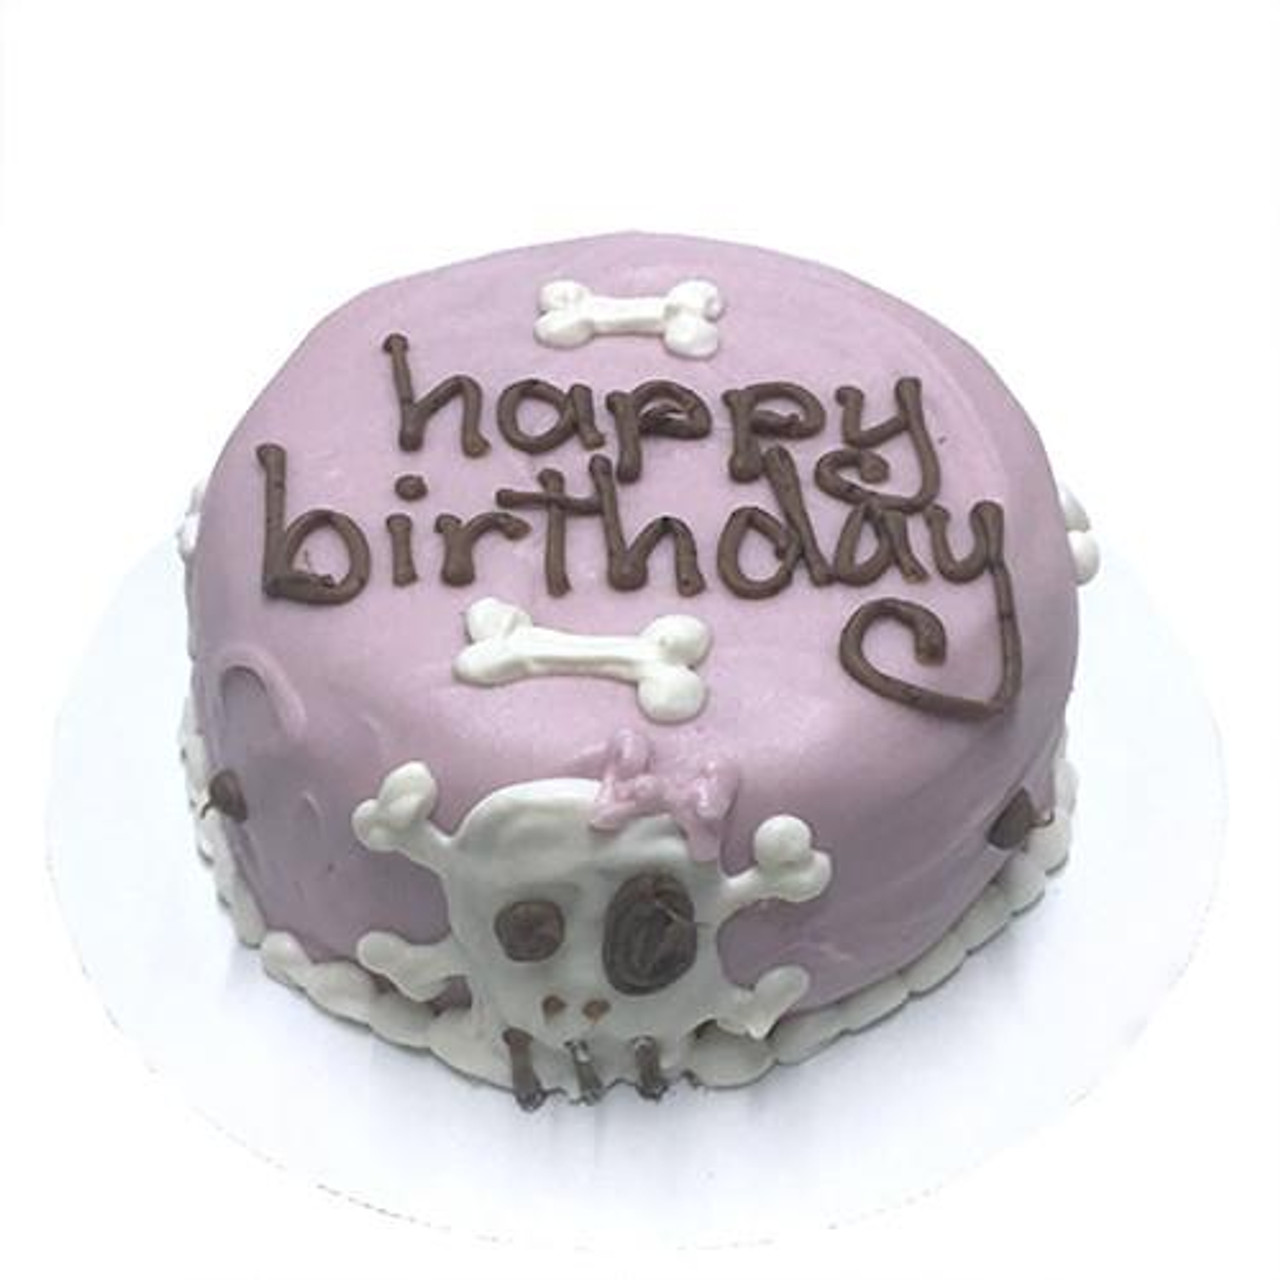 Astounding Customized Birthday Cakes For Dogs Pink Skull Organic Dog Treats Funny Birthday Cards Online Eattedamsfinfo